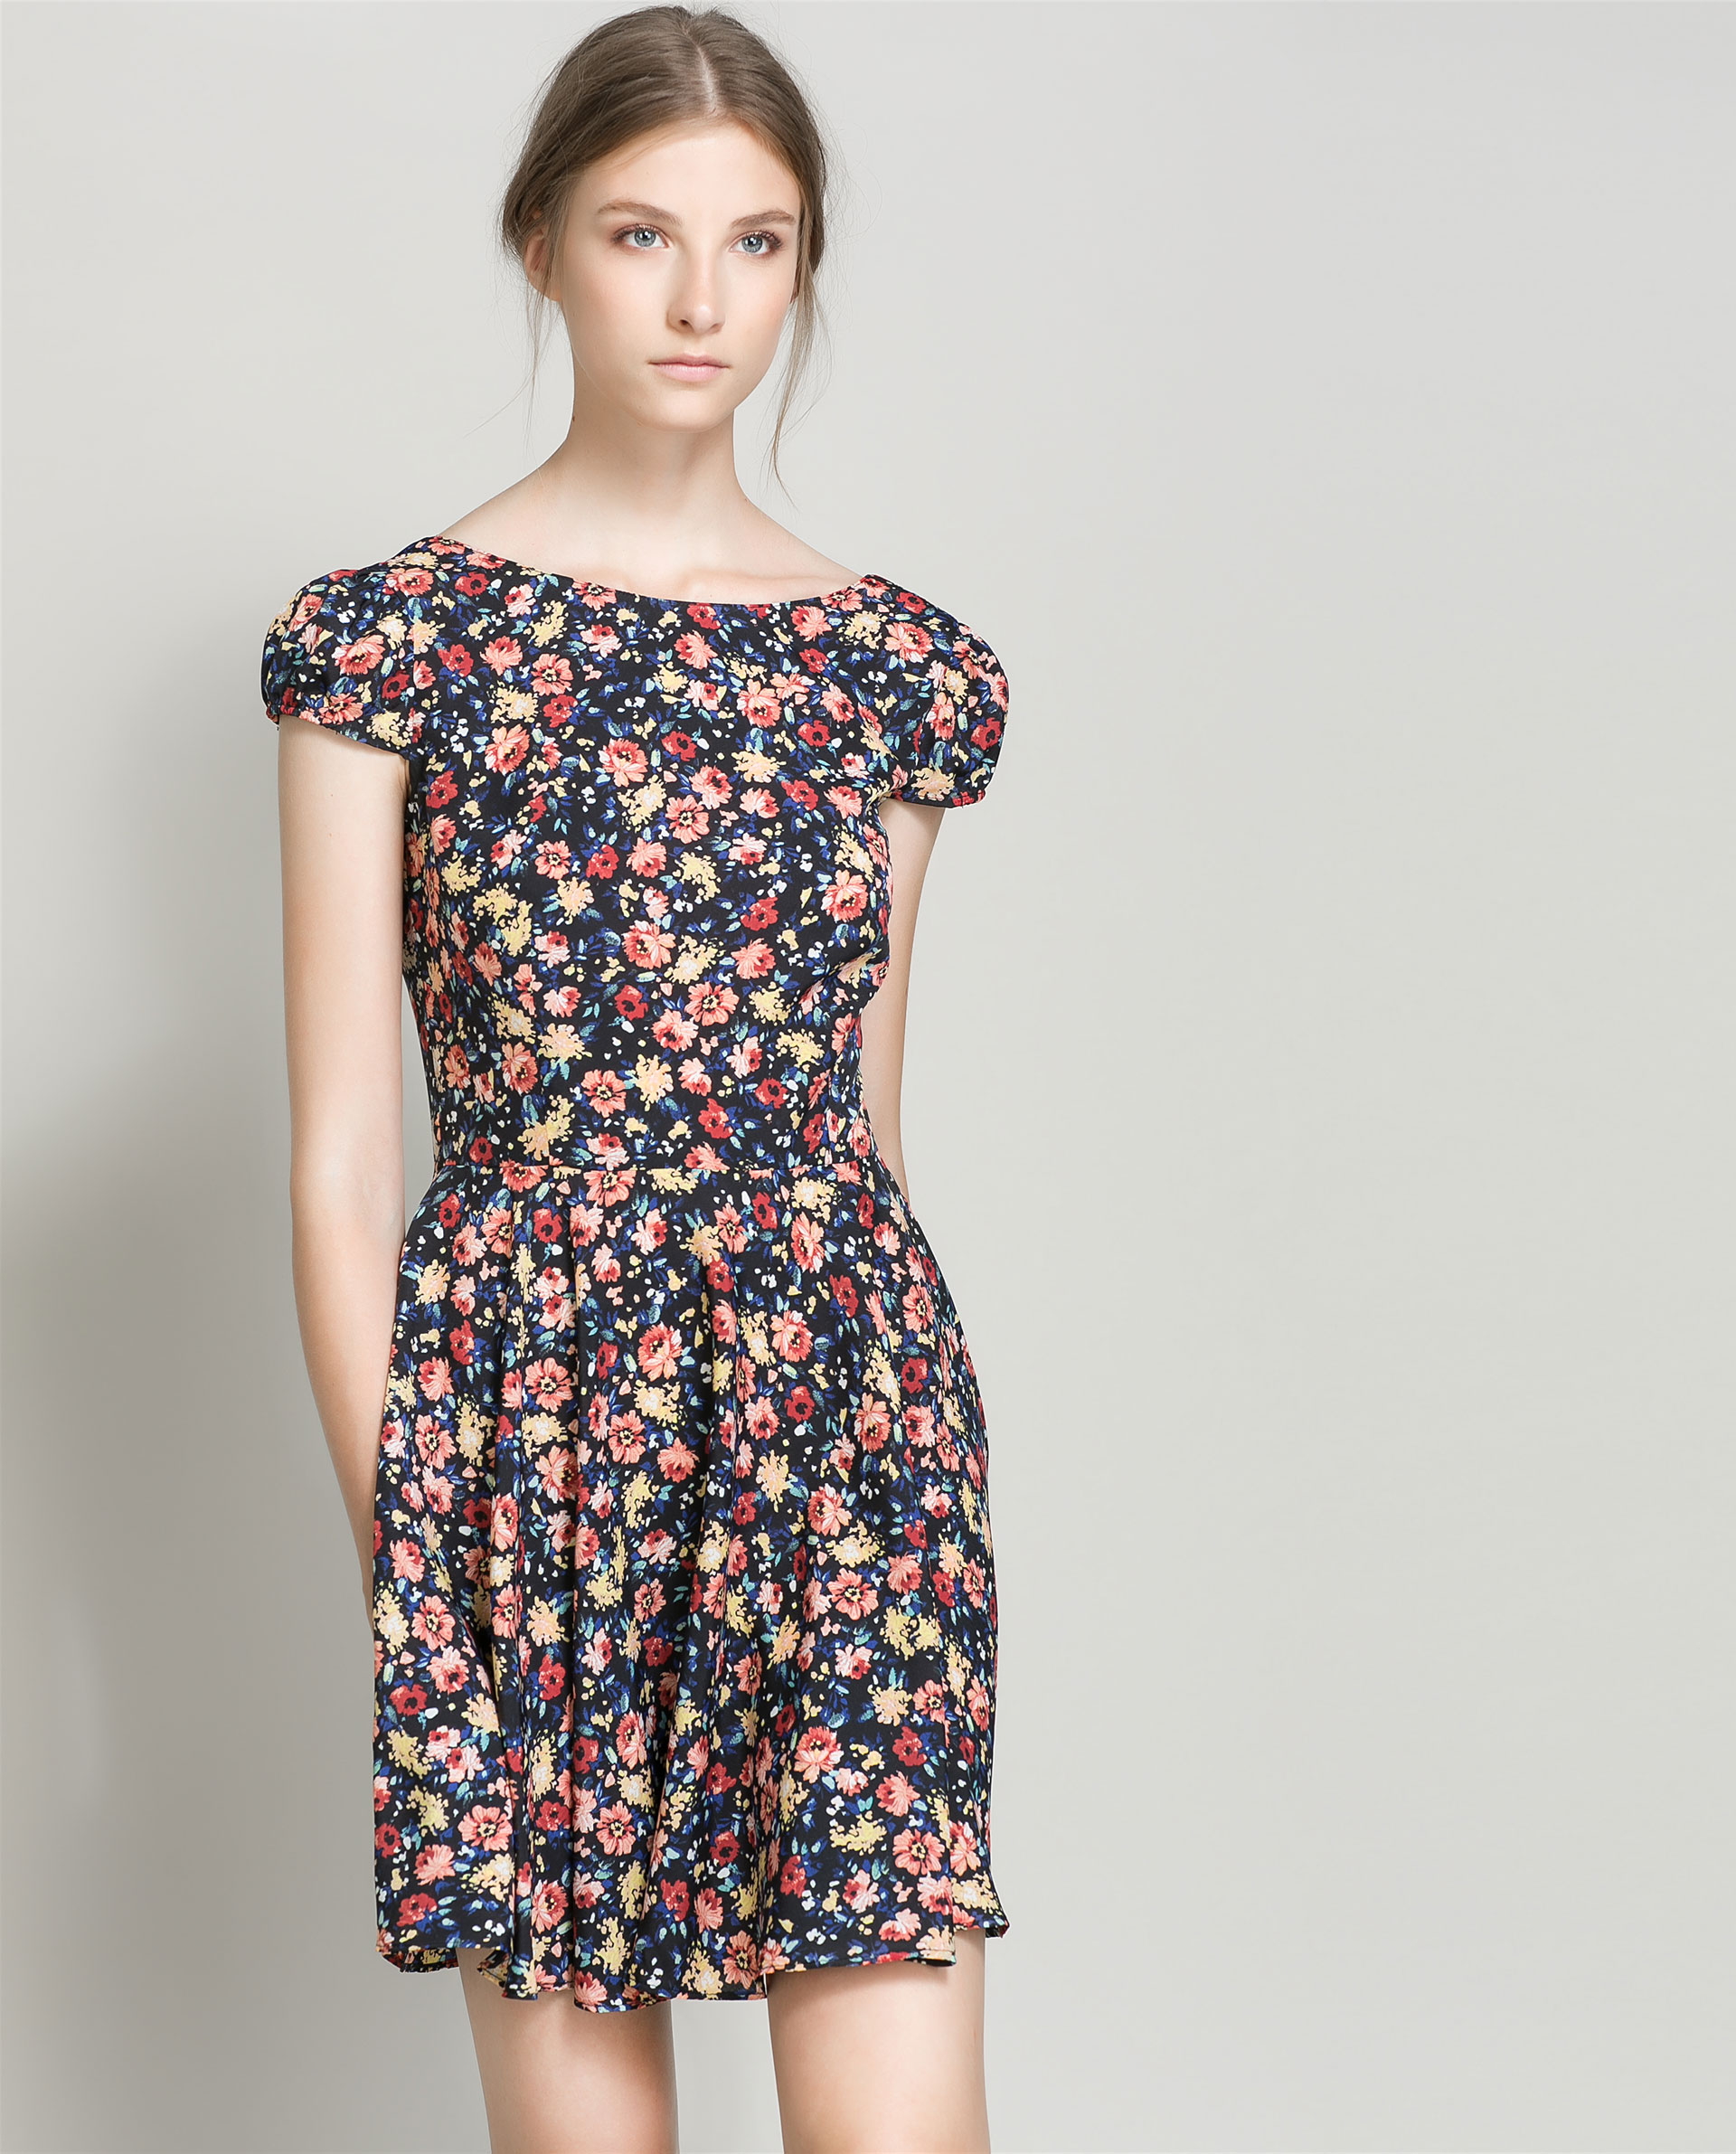 Buy Printed Dresses For Women Online